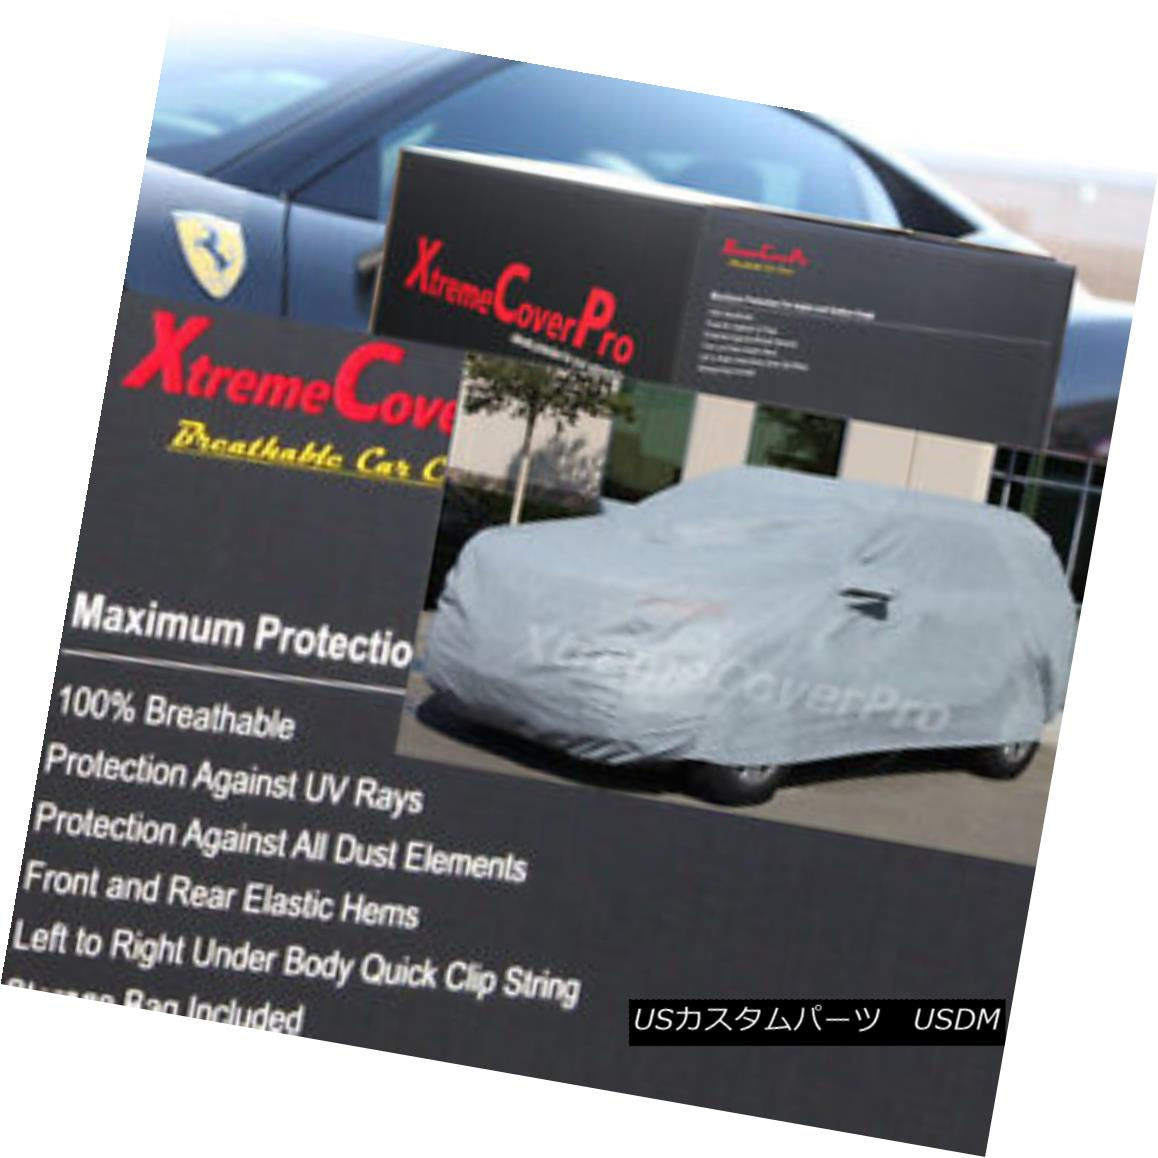 カーカバー 1992 1993 1994 1995 1996 Jeep Cherokee 4DOOR Breathable Car Cover w/MirrorPocket 1992 1993 1994 1994 1996ジープ・チェロキー4DOOR通気性のカーカバー、MirrorPocket